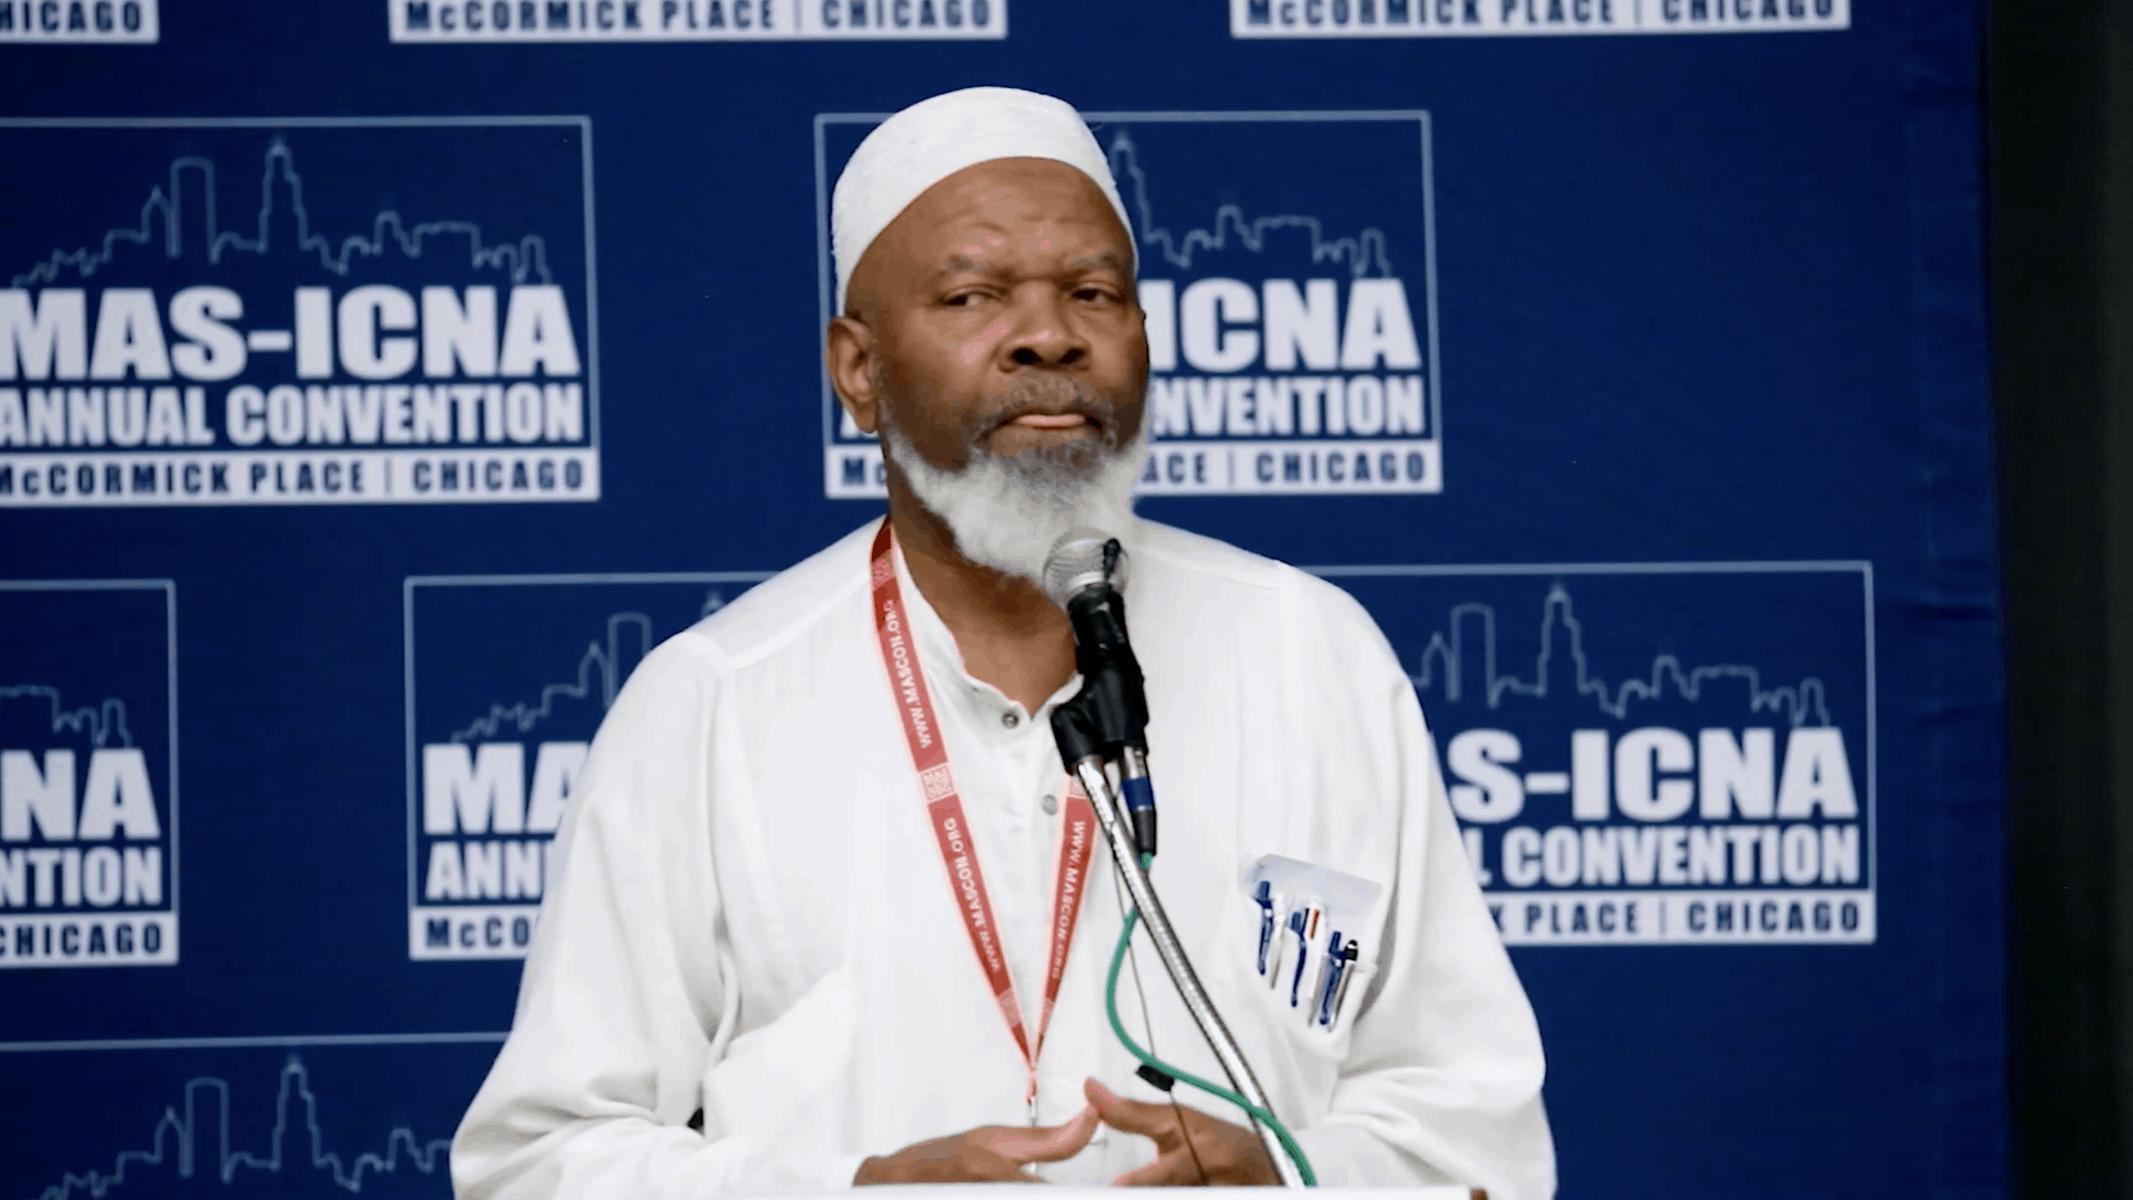 Siraj Wahhaj – Facing Bigots With Outreach, Civil Services, and Civic Engagement